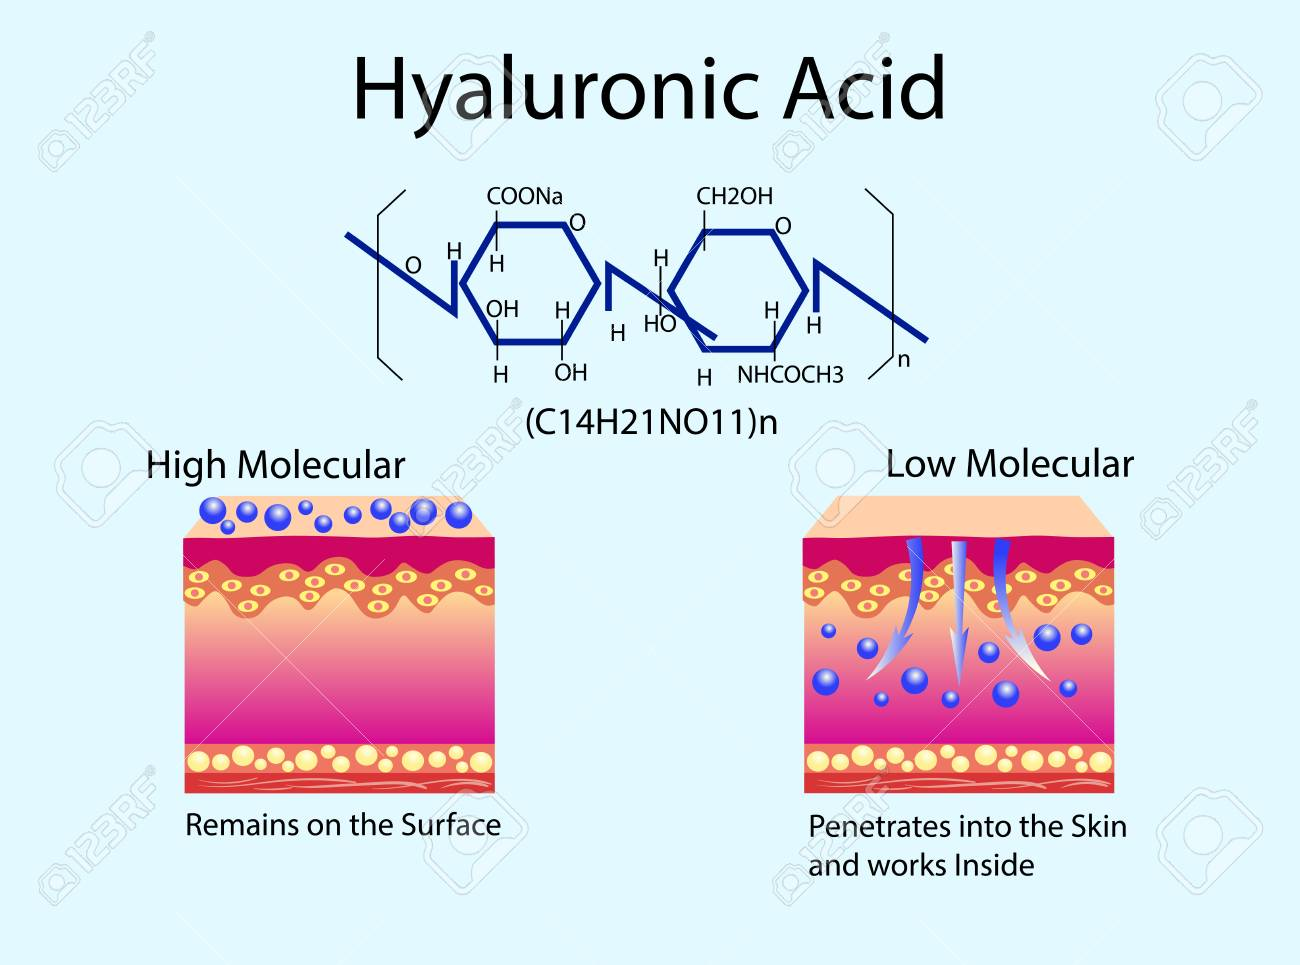 hight resolution of vector vector illustration with hyaluronic acid in skin care products low molecular and high molecular